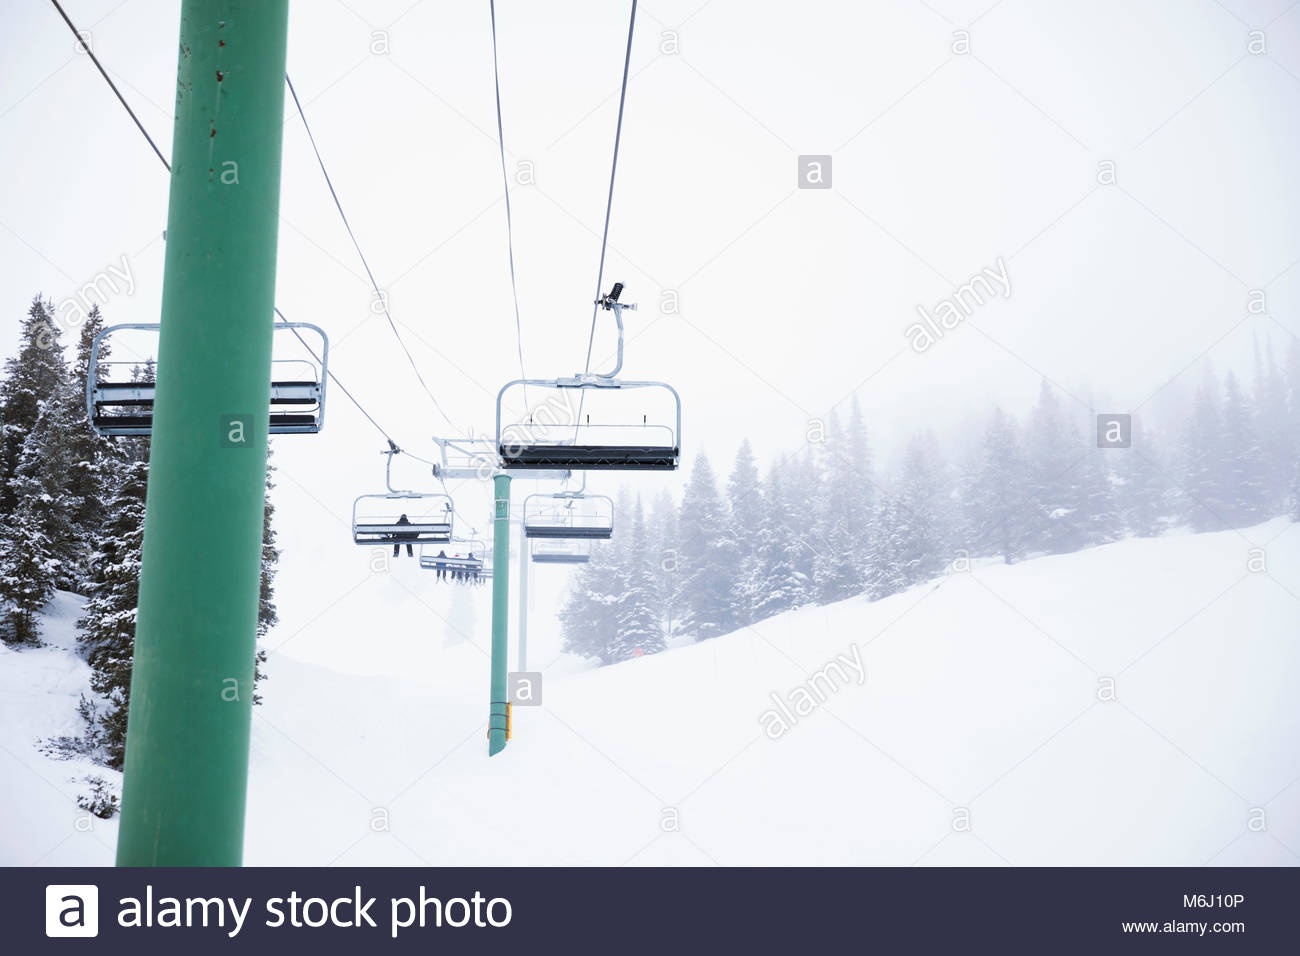 Skiers on chair lift over snowy landscape at ski resort - Stock Image